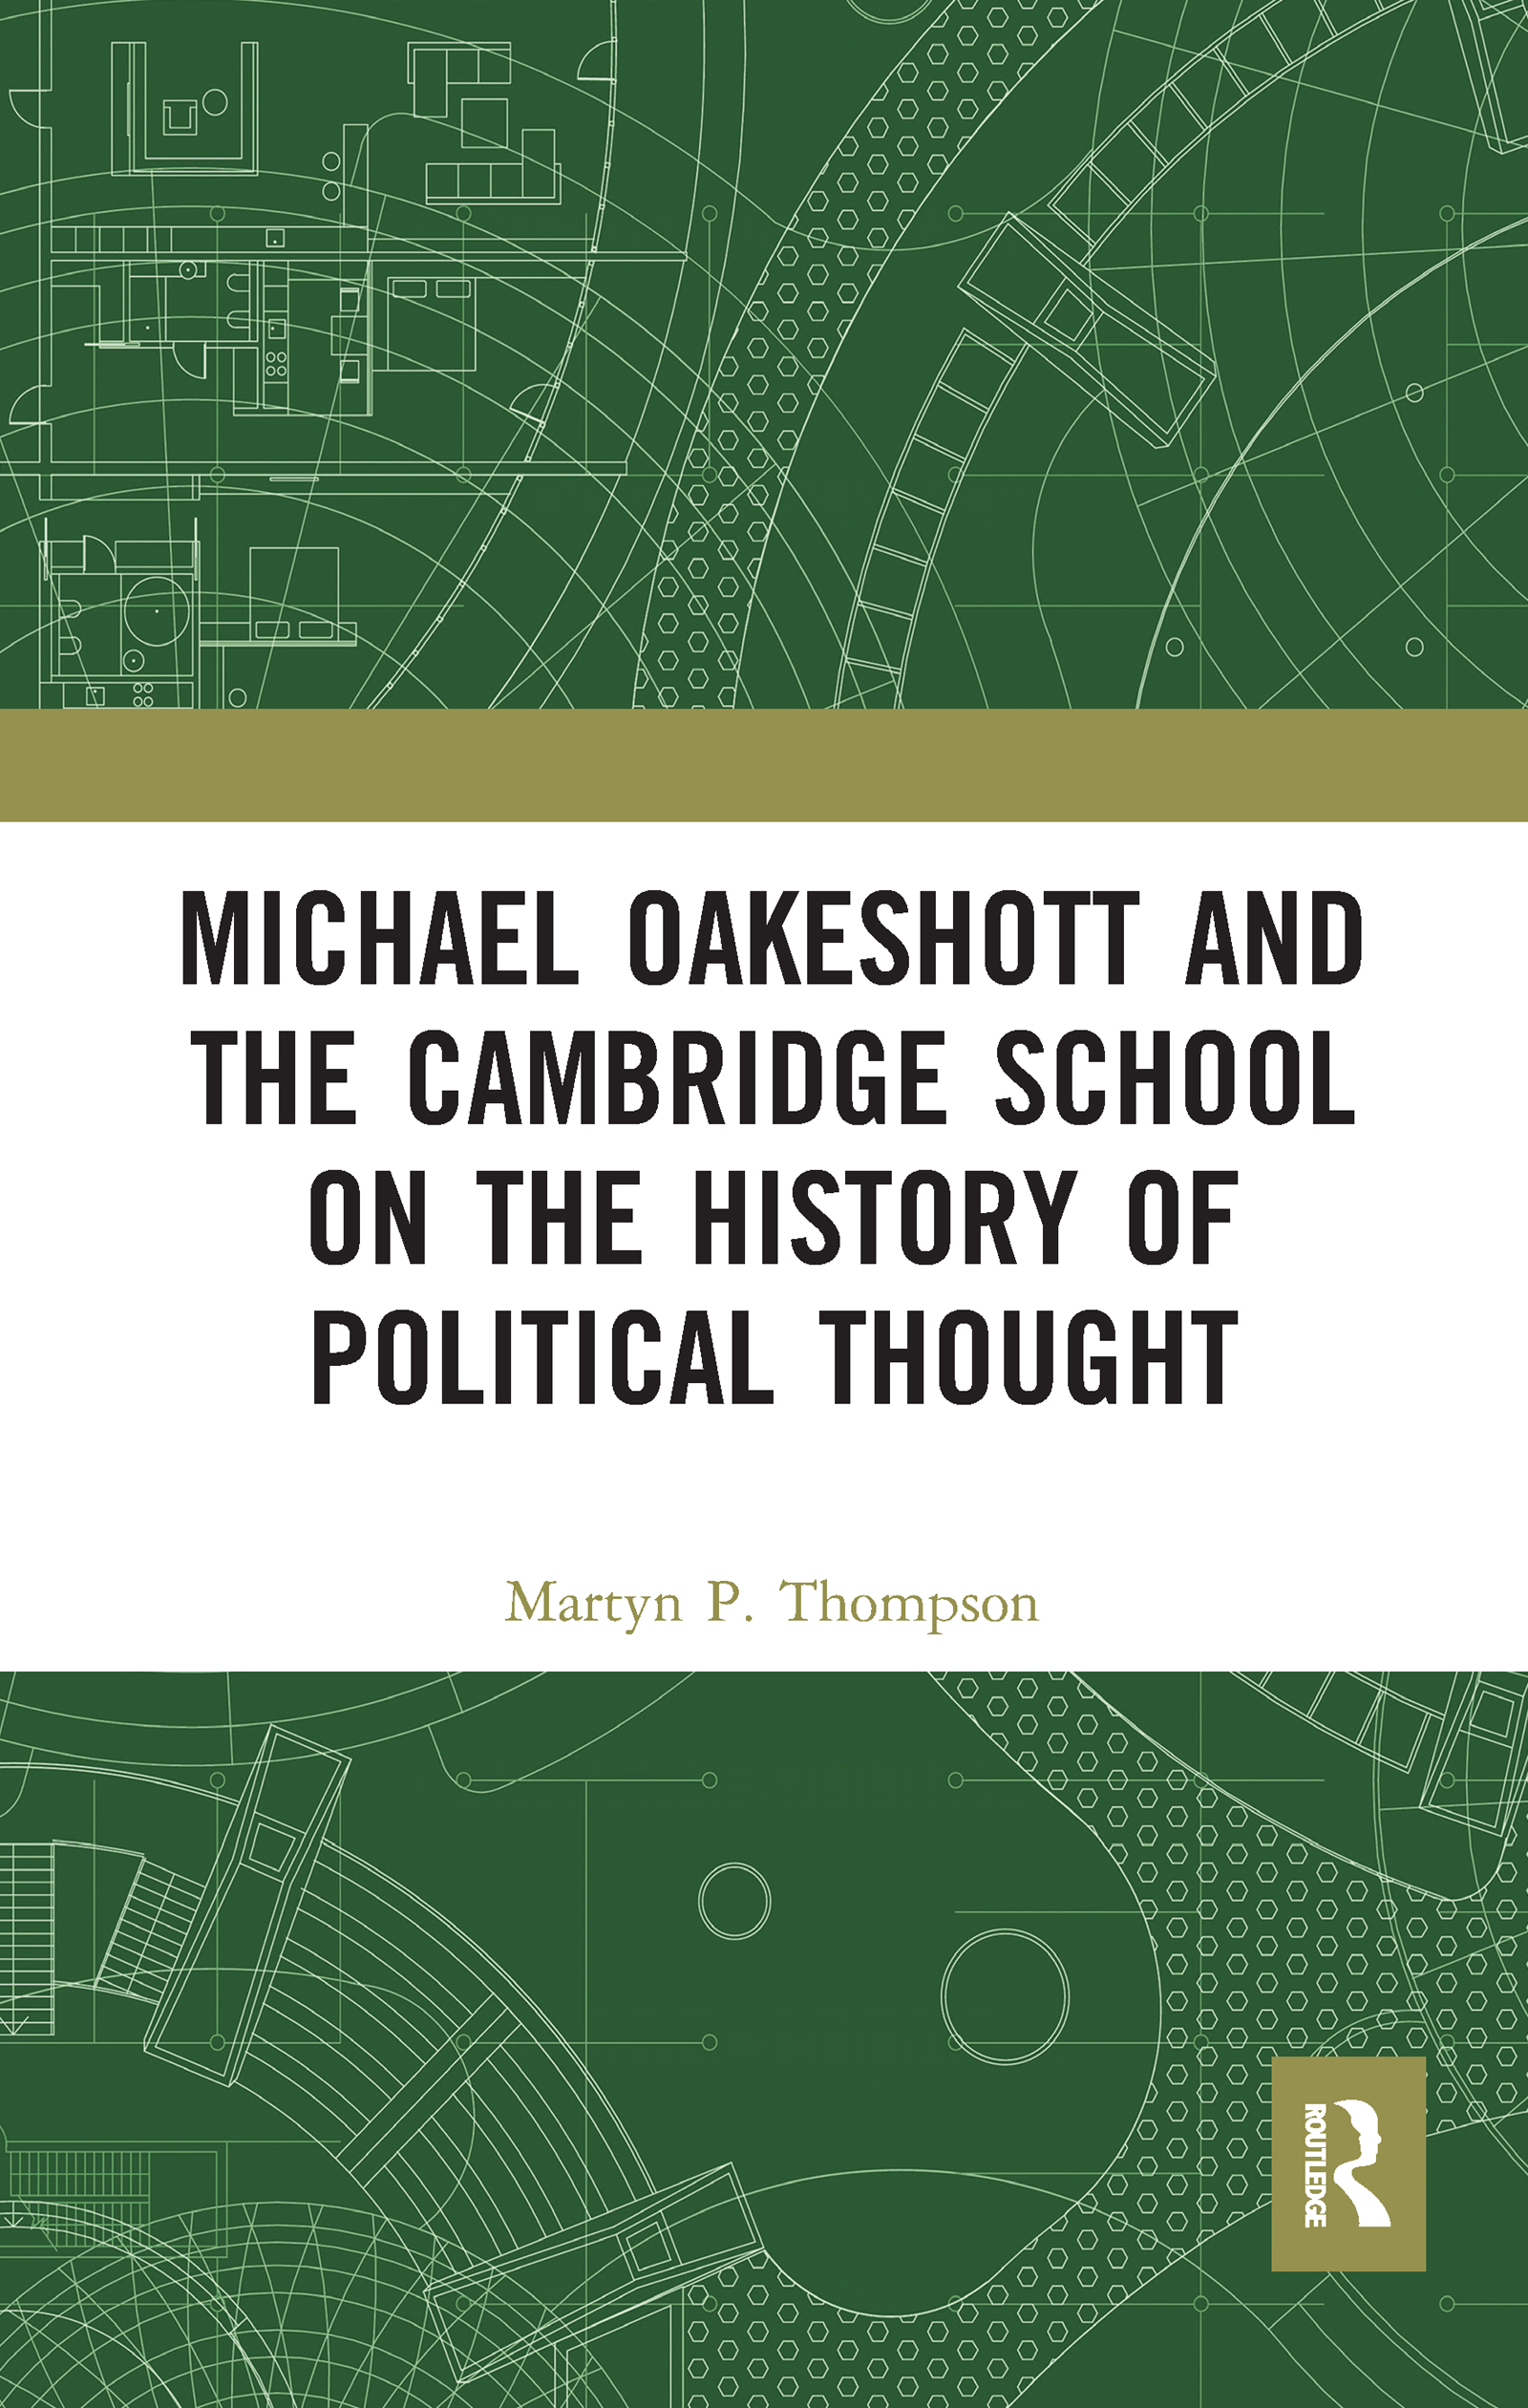 Michael Oakeshott and the Cambridge School on the History of Political Thought